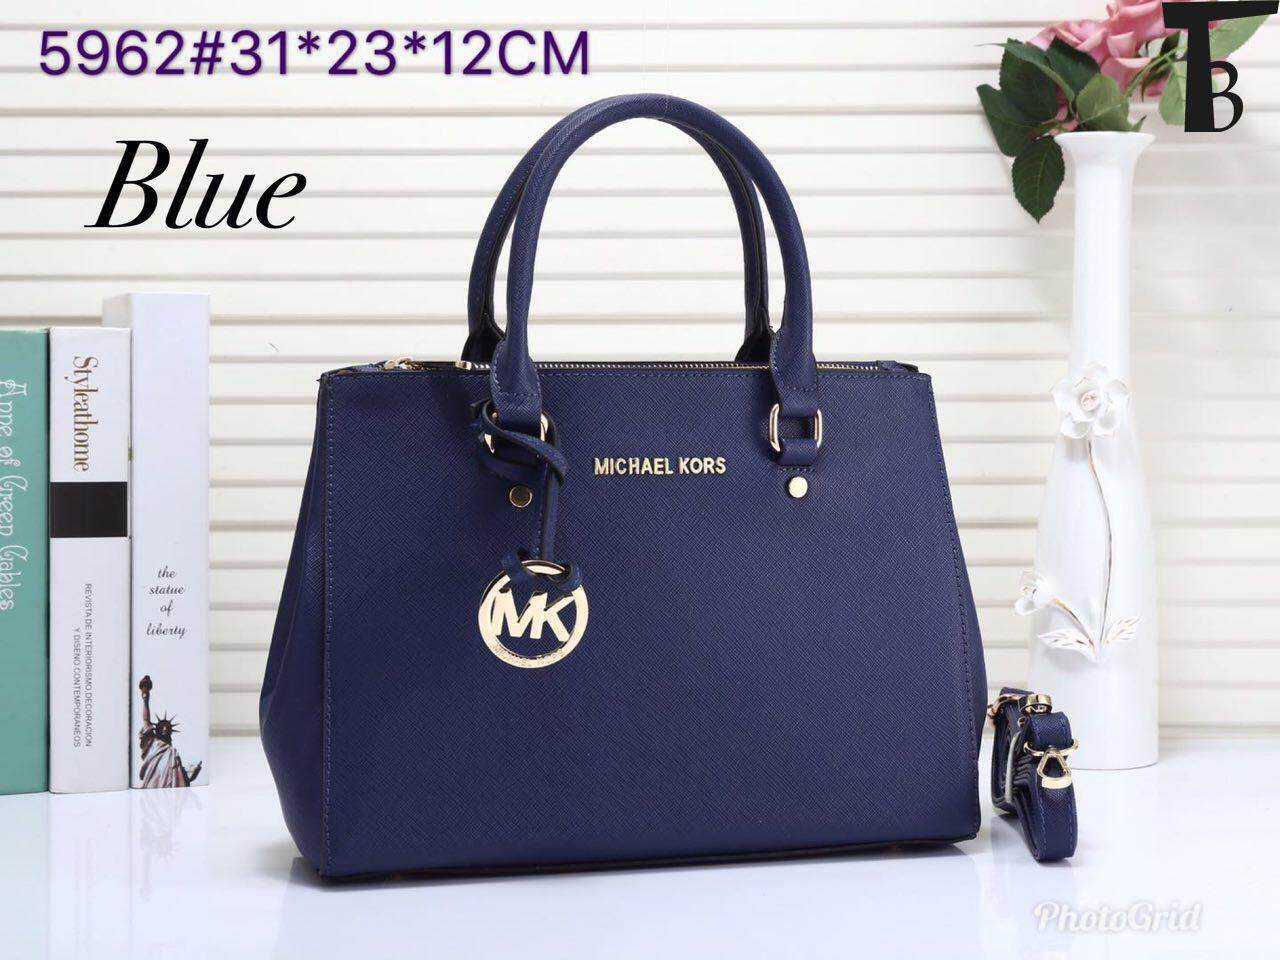 11.11 Premium Quality MK Saffiano Bag Fashion Michael Kors Tote Sling Bag fb5b18dfe00c7